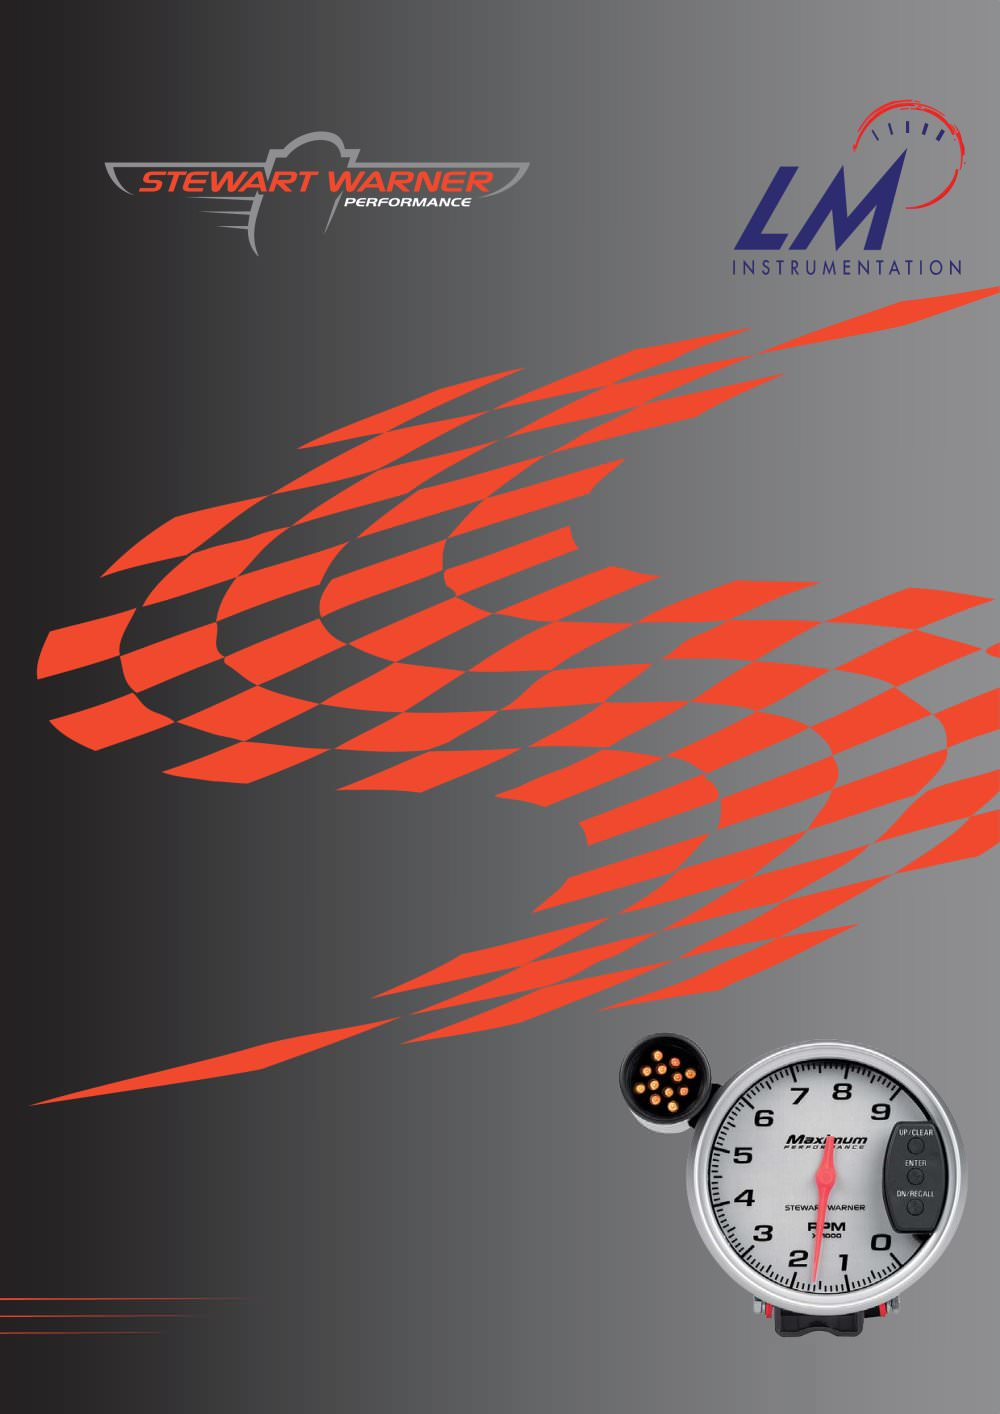 Stewart Warner Maximum Performance Tachometer Wiring Starting Know Tach Tuning And Competition Instruments Lm Rh Pdf Directindustry Com